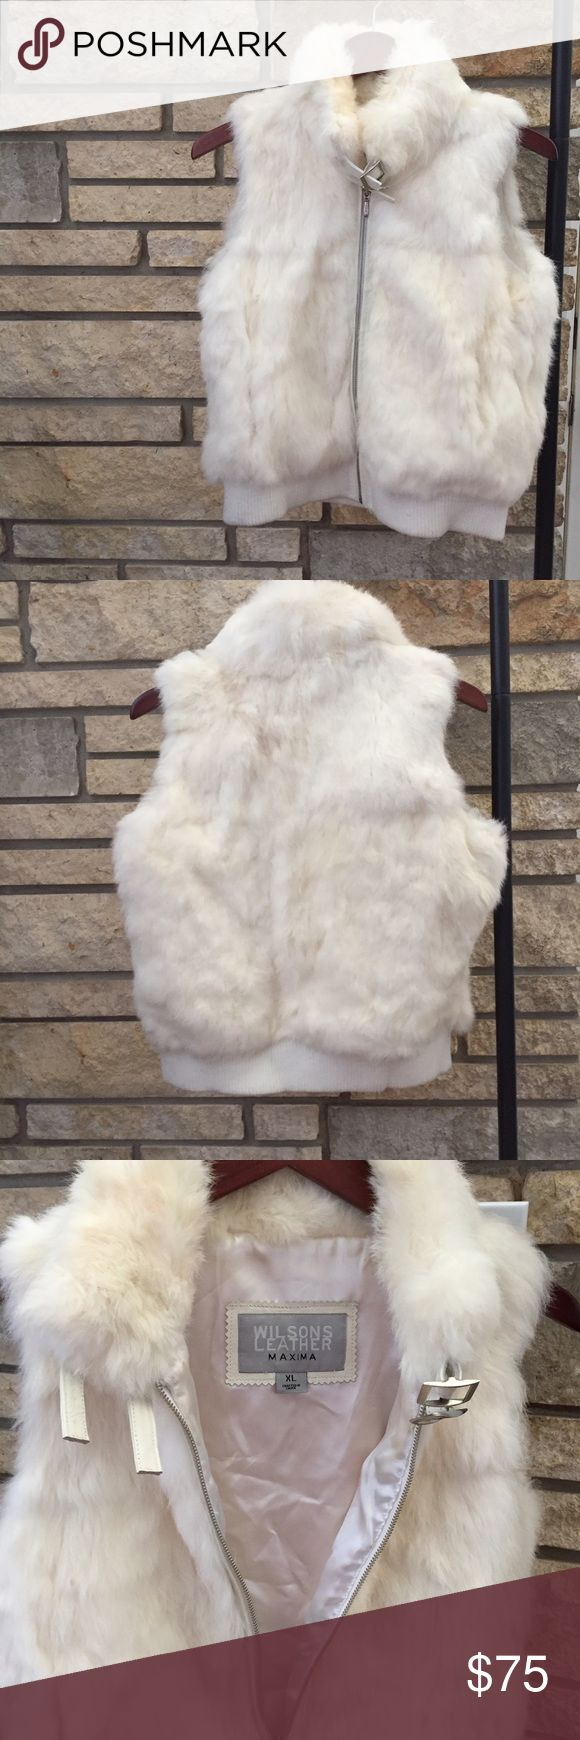 Rabbit fur vest White rabbit fur vest, size XL, EUC. Satin lining, two leather and silver trimmed buckles at the neck. I bought this years ago, and I've only worn it a few times. It's gorgeous and wonderfully soft! Wilsons Leather Jackets & Coats Vests